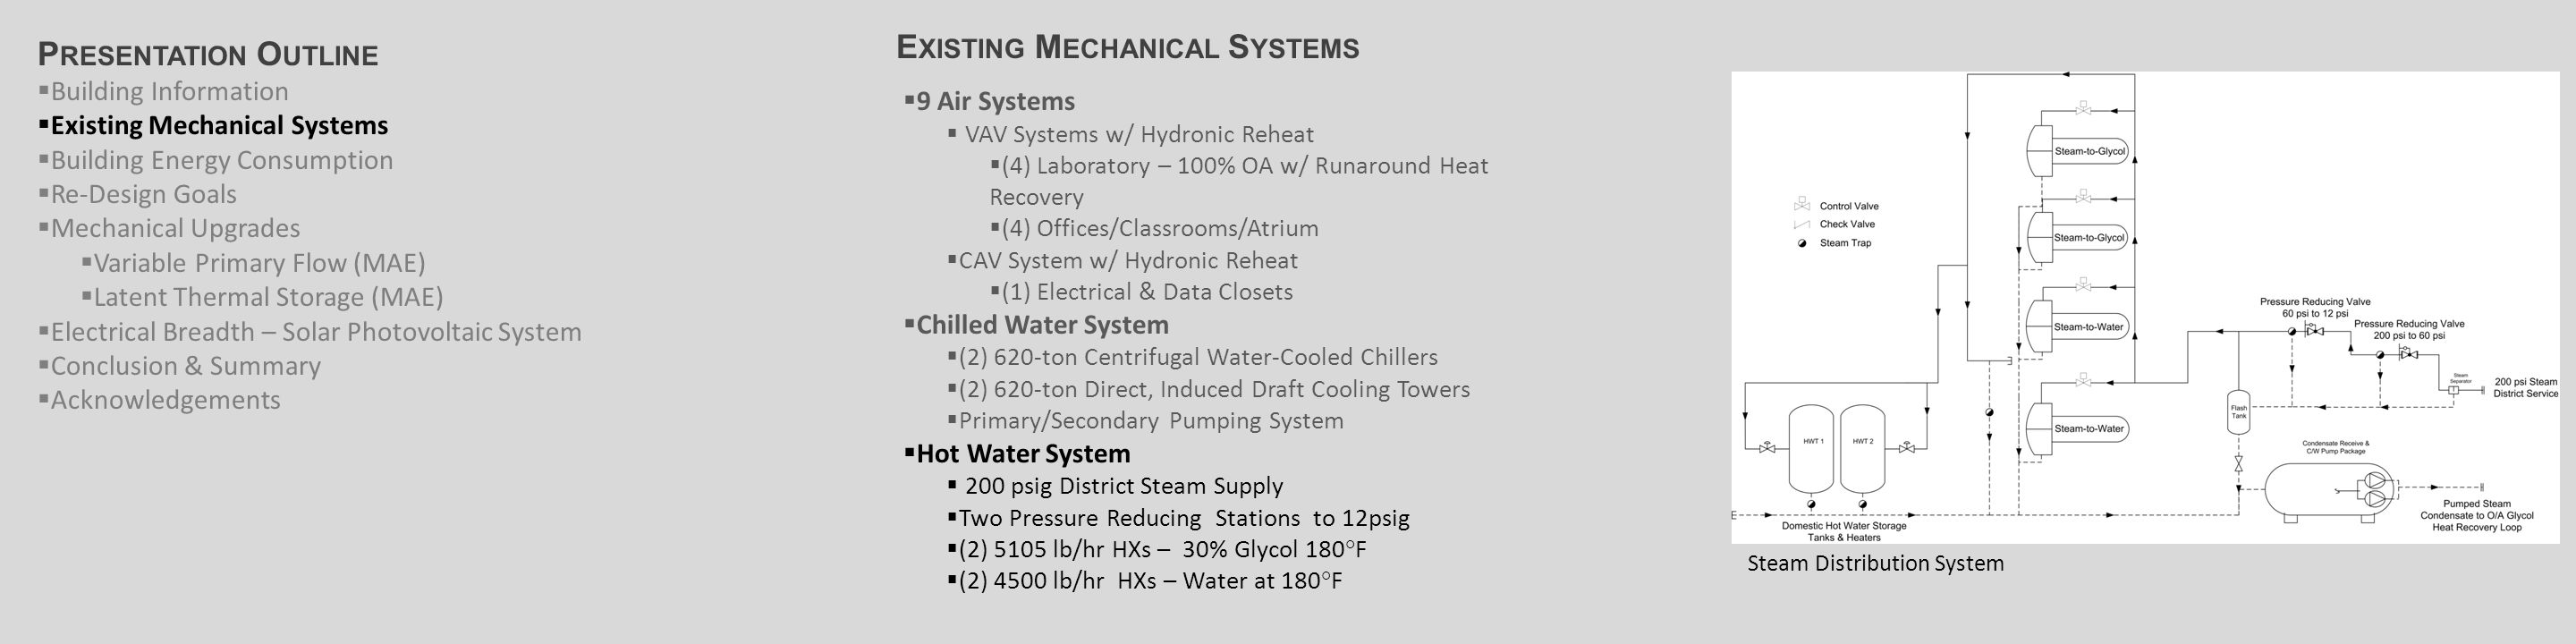 B UILDING E NERGY C ONSUMPTION Annual Building Energy Consumption FunctionElectricity (kWh) Steam (kBtu) kBtu/year Primary Heating -4,537,6064548646 Chiller Energy349,031 -1191243 Cooling Tower121,524 -414761 Condenser Pump147,250 -502564 HVAC Fans561366 -1915942 HVAC Pumps67,930 -231845 Lighting368,045 -1256137 Receptacle Loads1,375,321 -4693970 Total Consumption2,993,7014,537,60614755108 P RESENTATION O UTLINE  Building Information  Existing Mechanical Systems  Building Energy Consumption  Re-Design Goals  Mechanical Upgrades  Variable Primary Flow (MAE)  Latent Thermal Storage (MAE)  Electrical Breadth – Solar Photovoltaic System  Conclusion & Summary  Acknowledgements